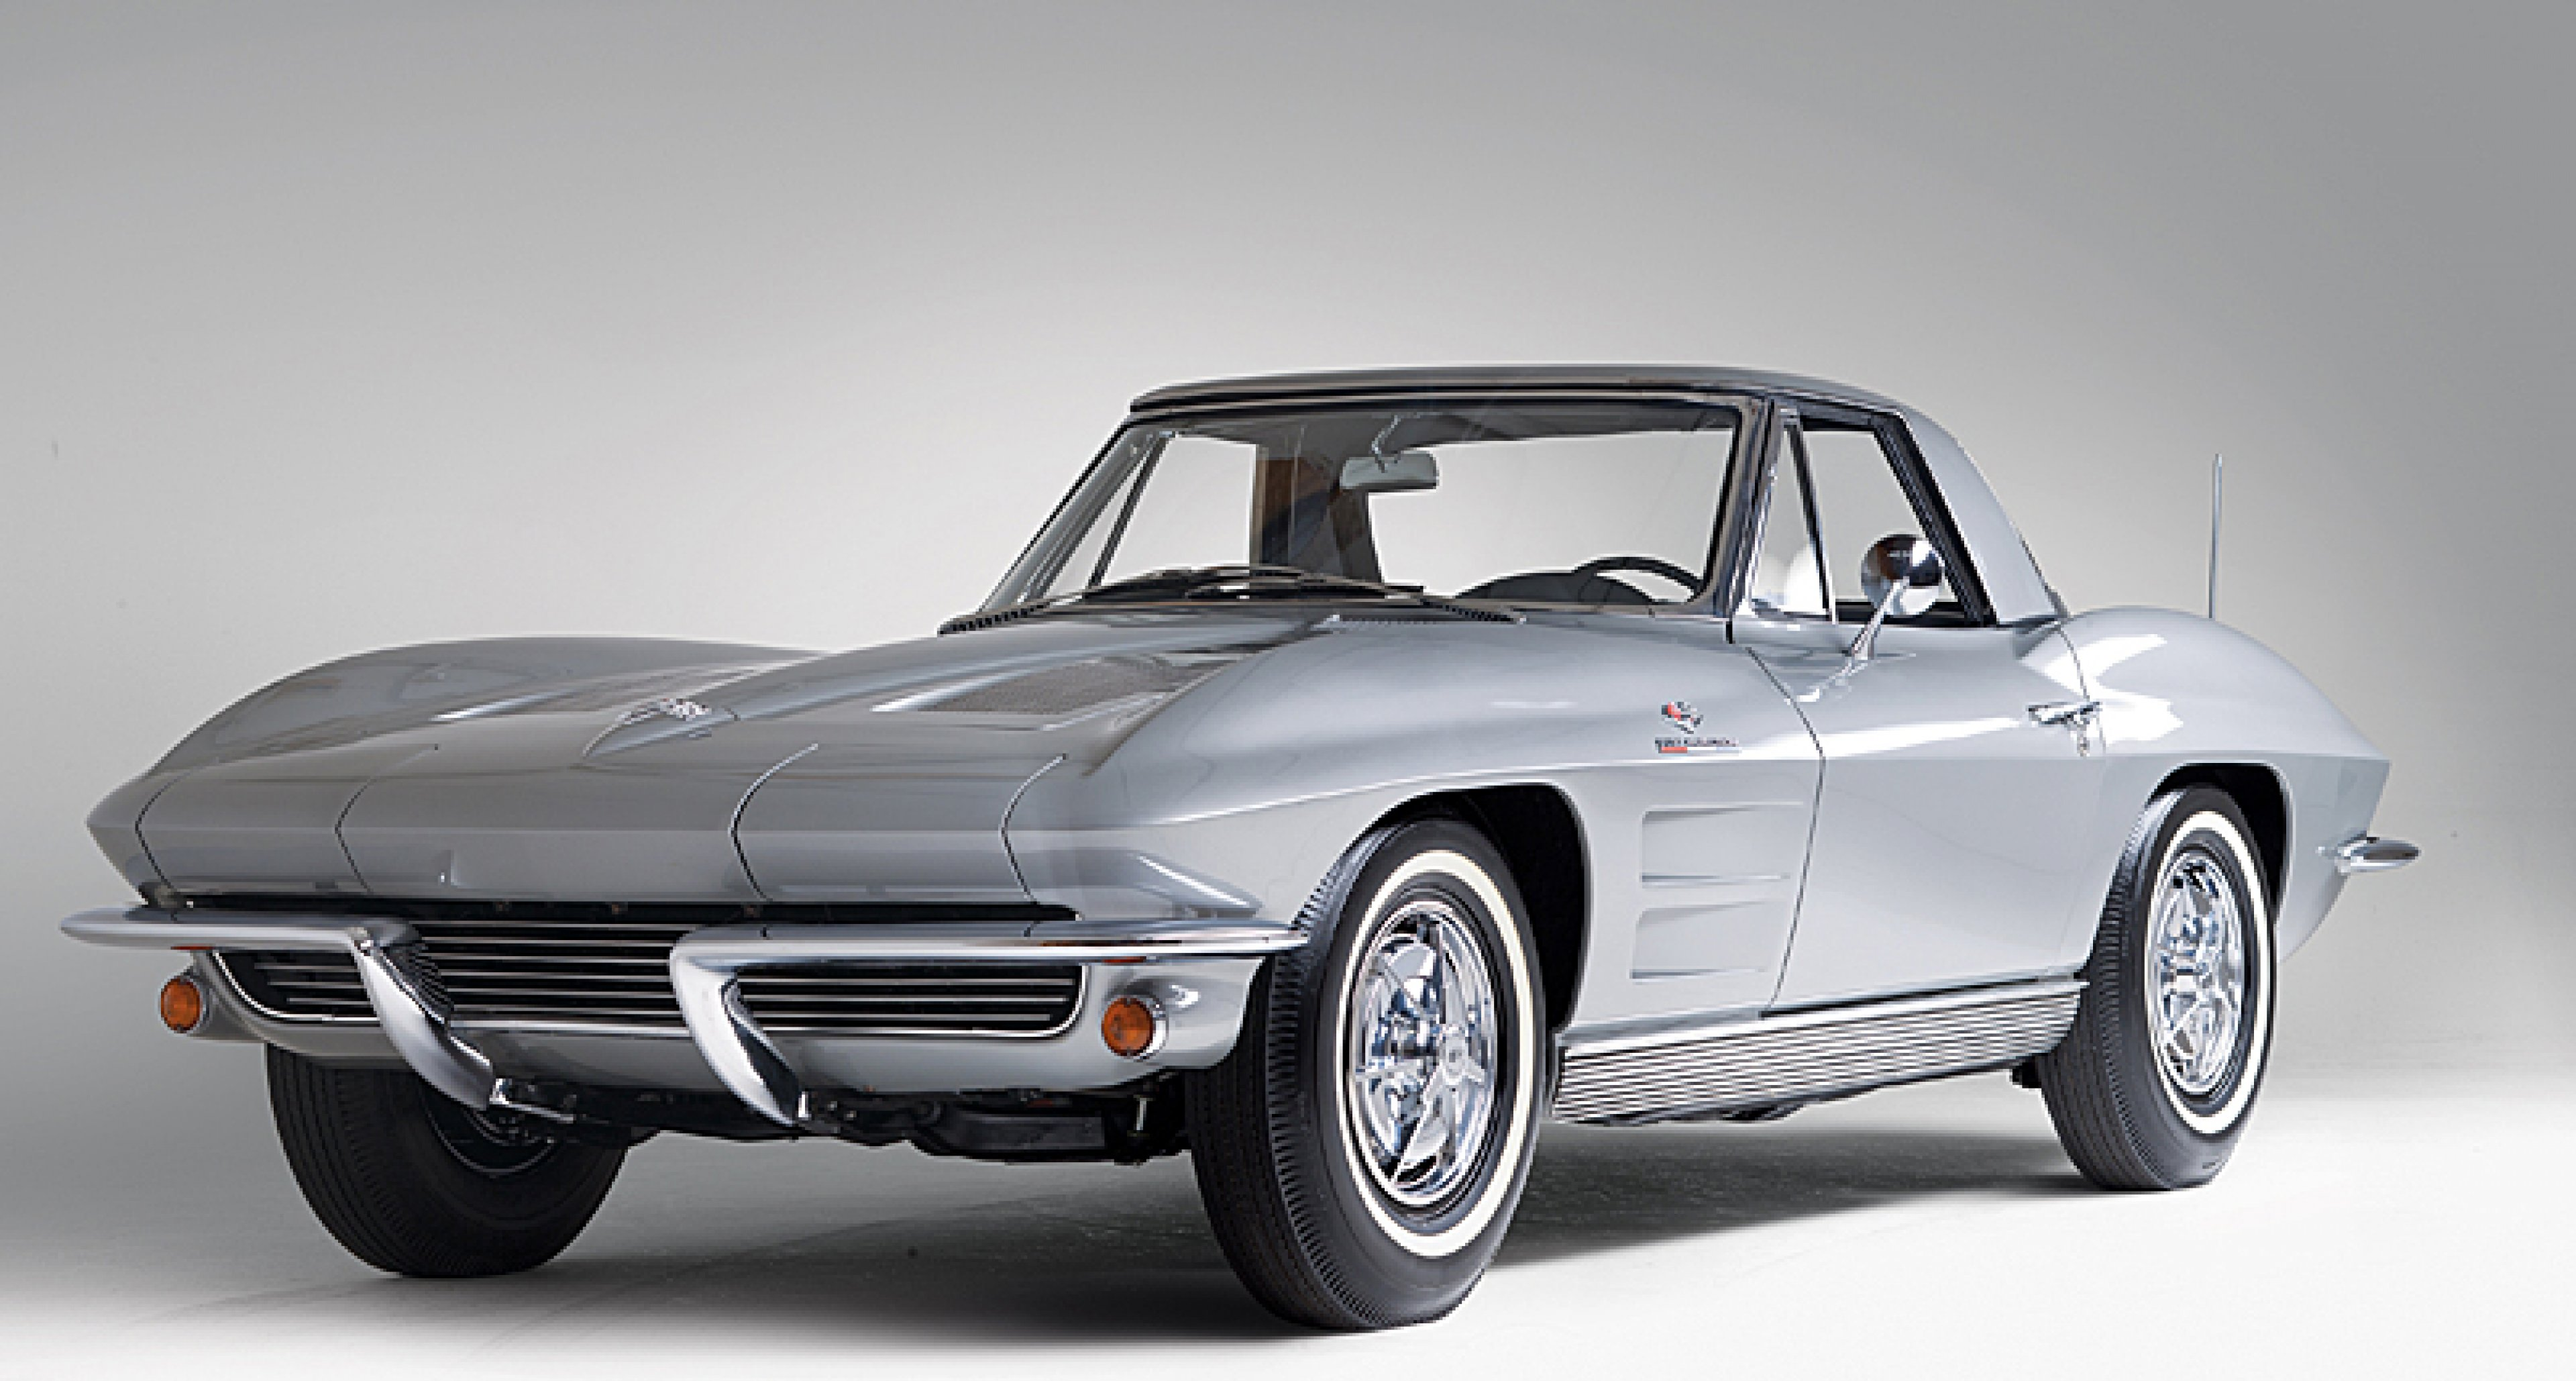 RM Auctions at Amelia Island, 9 March 2013: Preview